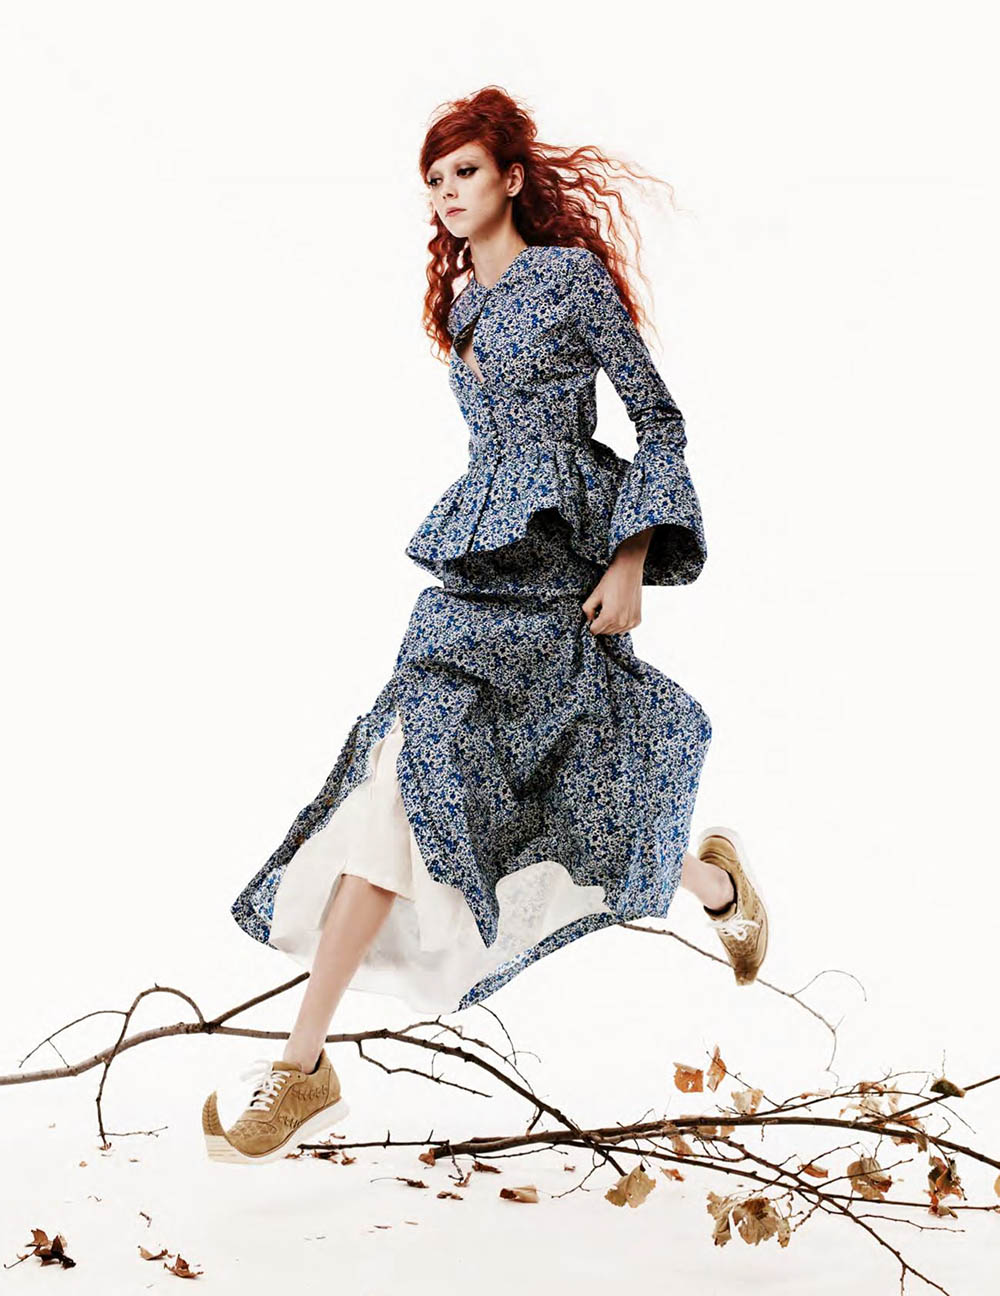 Natalie Westling by Craig Mcdean for British Vogue April 2018